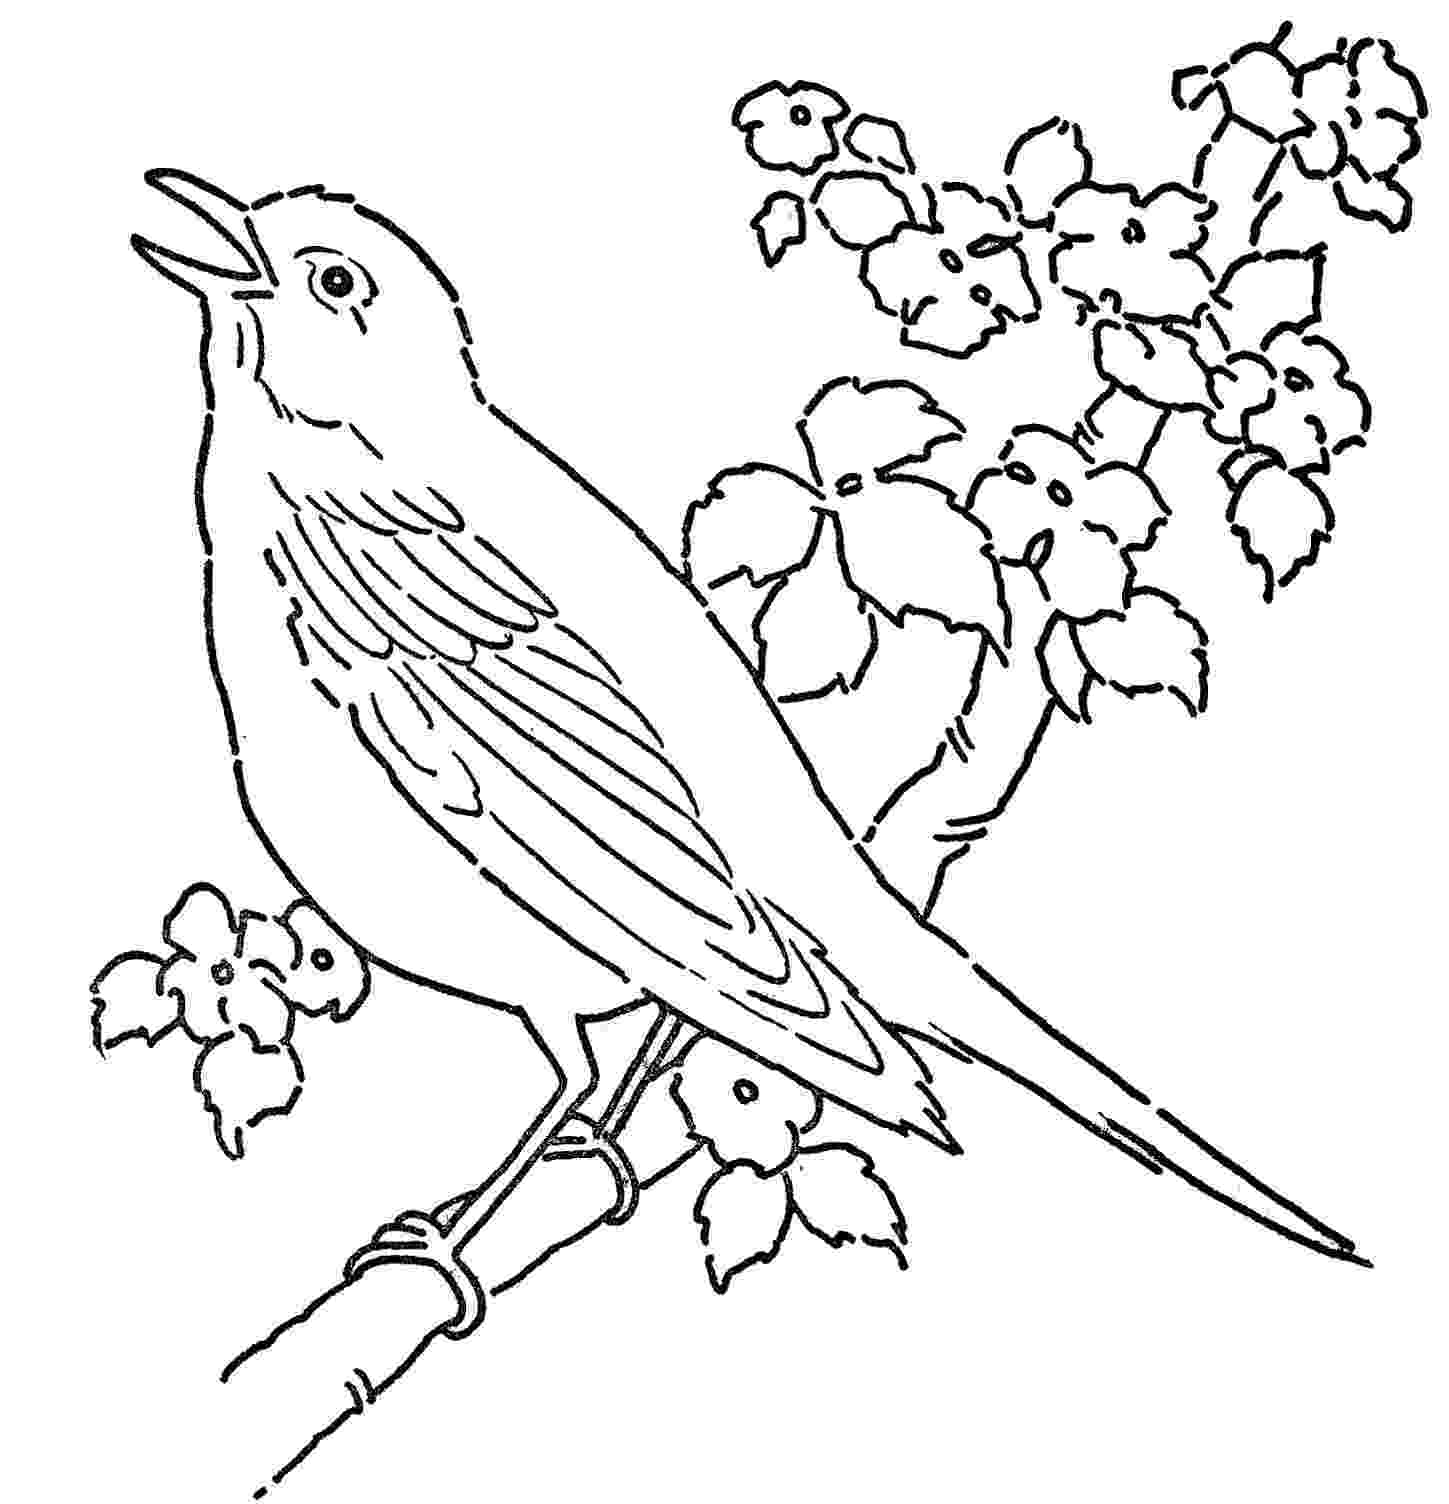 bird coloring pages to print angry birds kids coloring pages free printable kids coloring print to pages bird